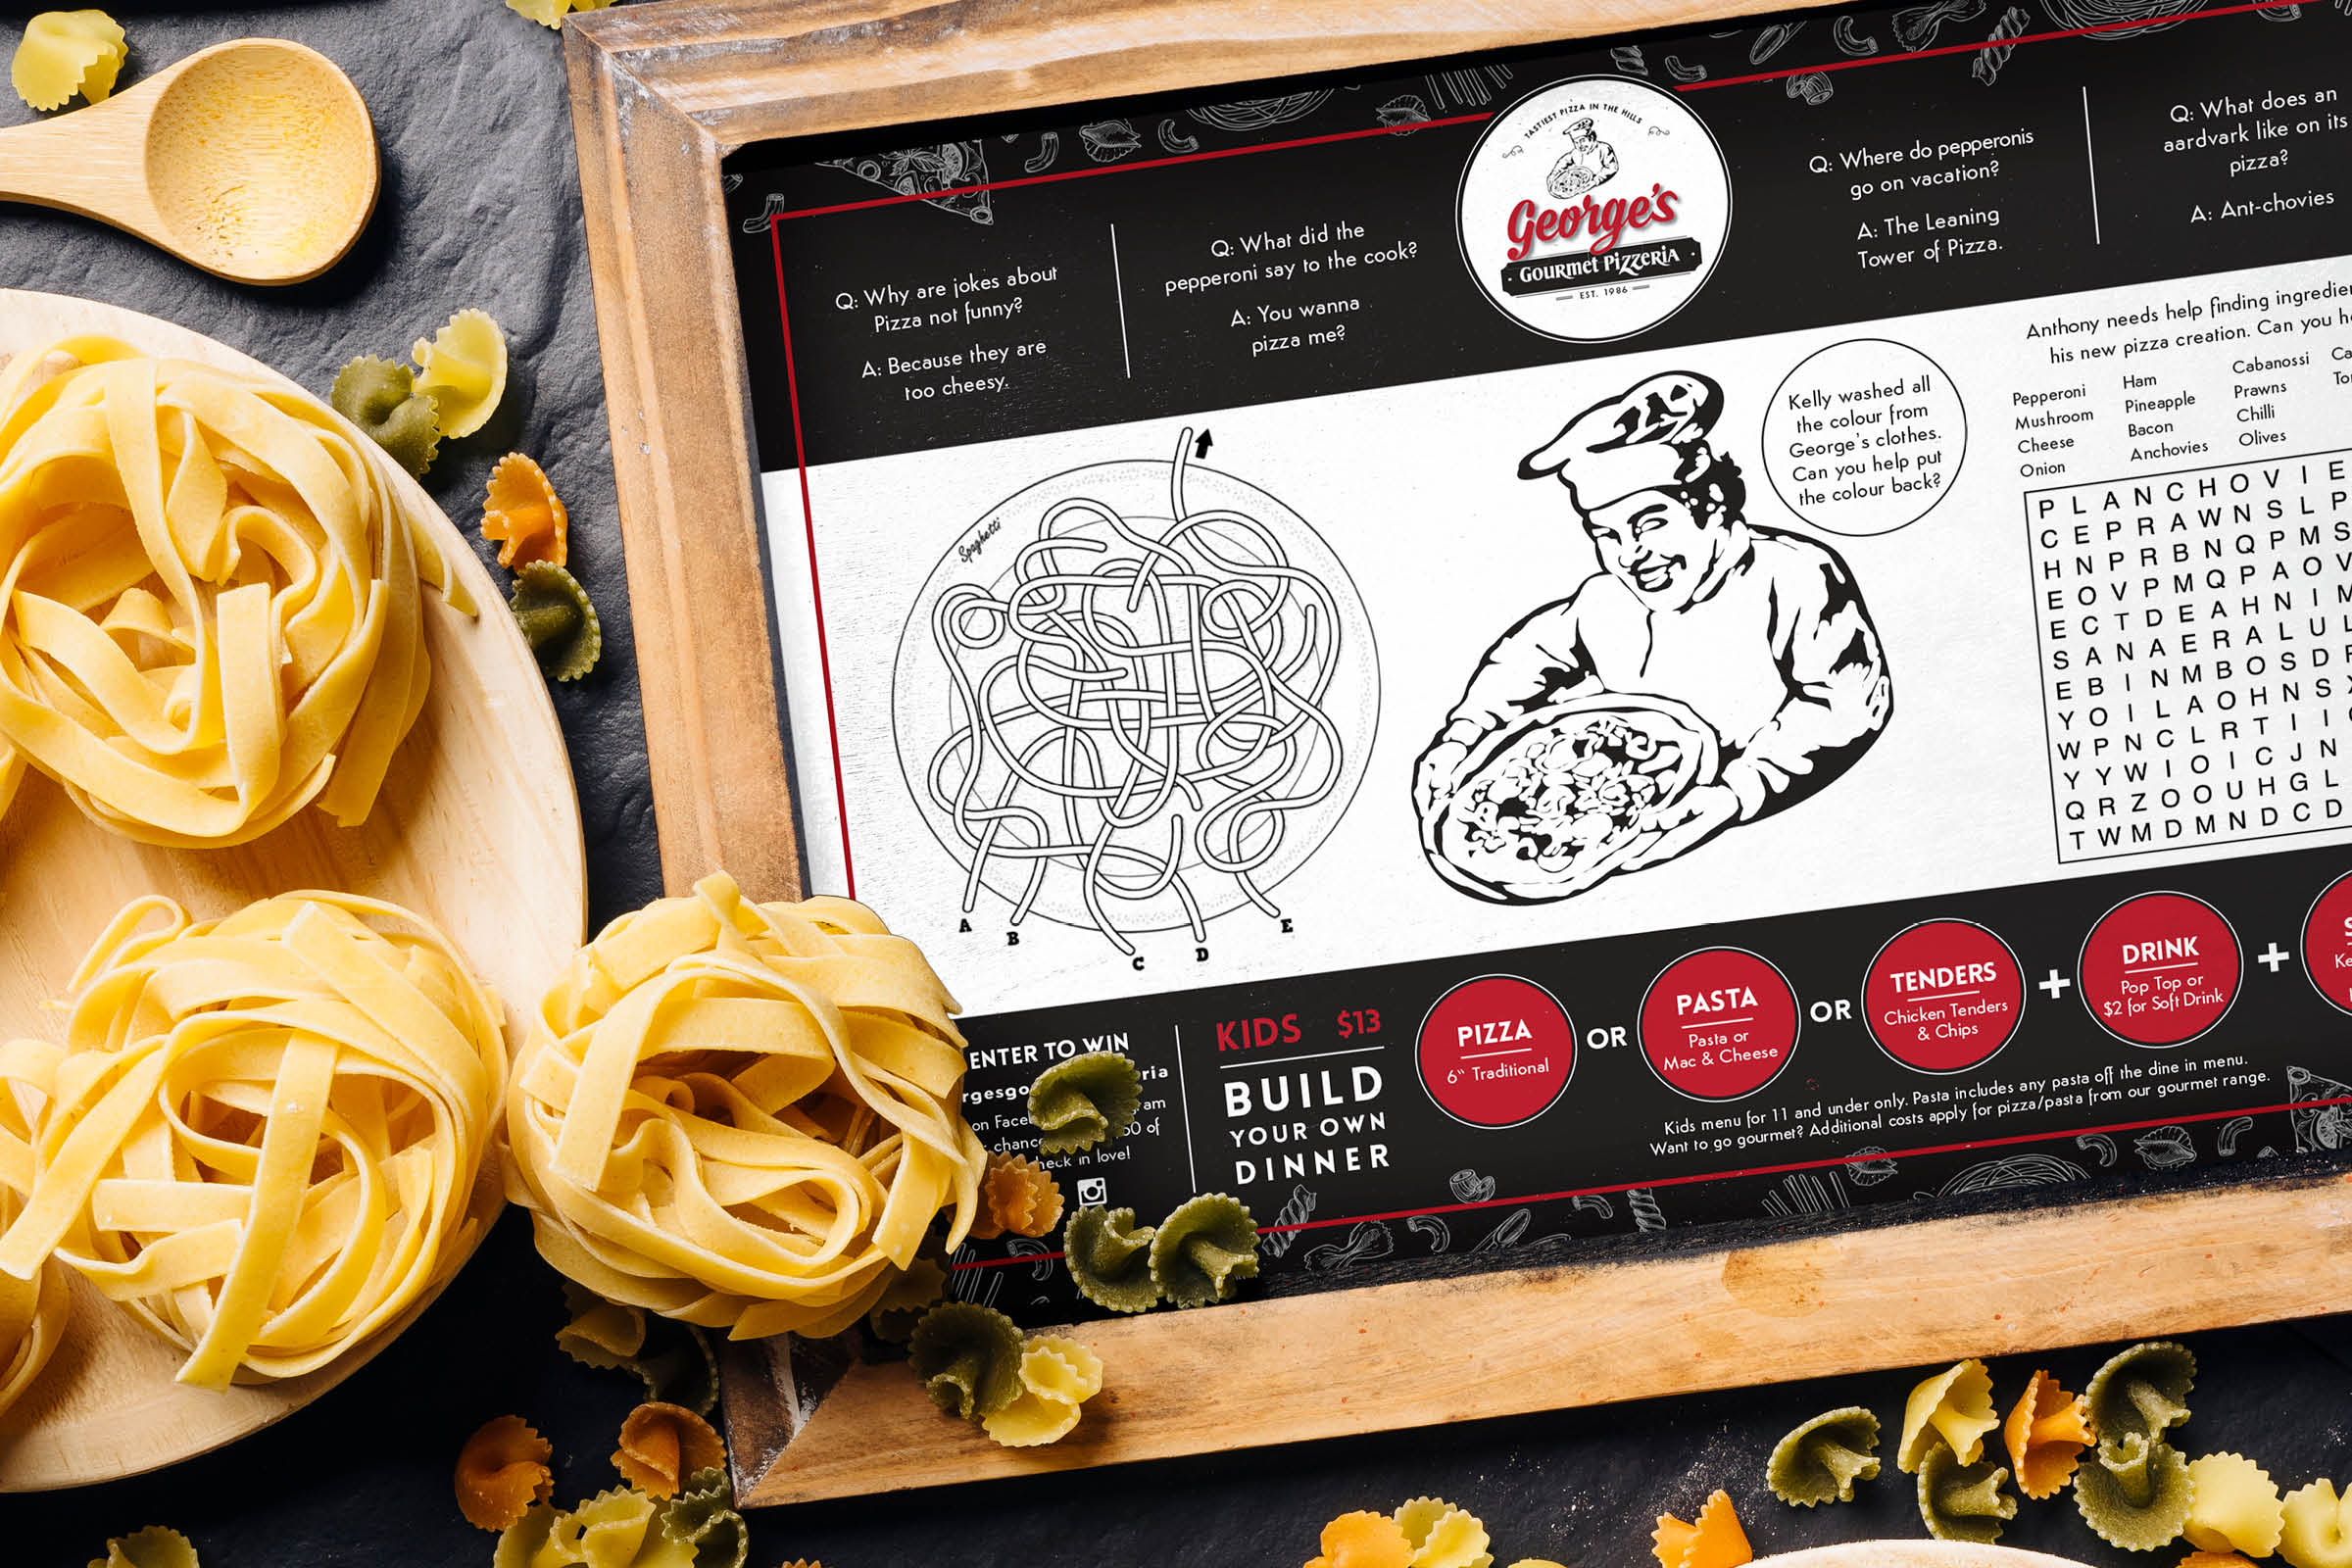 Georges Gourmet Pizza | Banquet Menu | Italian | Restaurant Graphic Design | Branding | Creative | Freelance | Illustrations | Italian Menu Design | Kids Menu | Fun | Italian Pizza Jokes